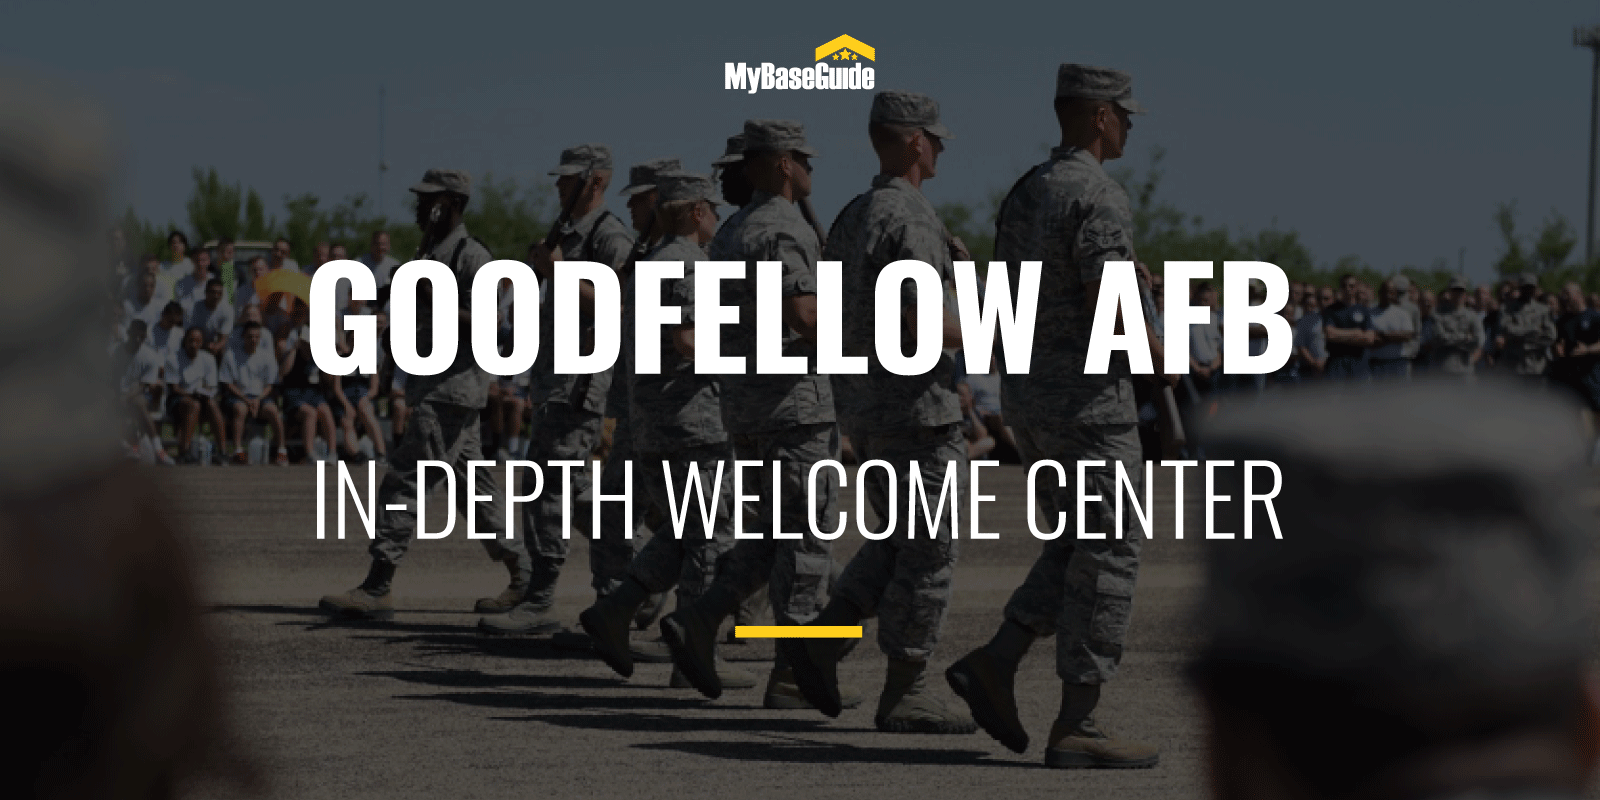 Goodfellow Air Force Base: In-Depth Welcome Center